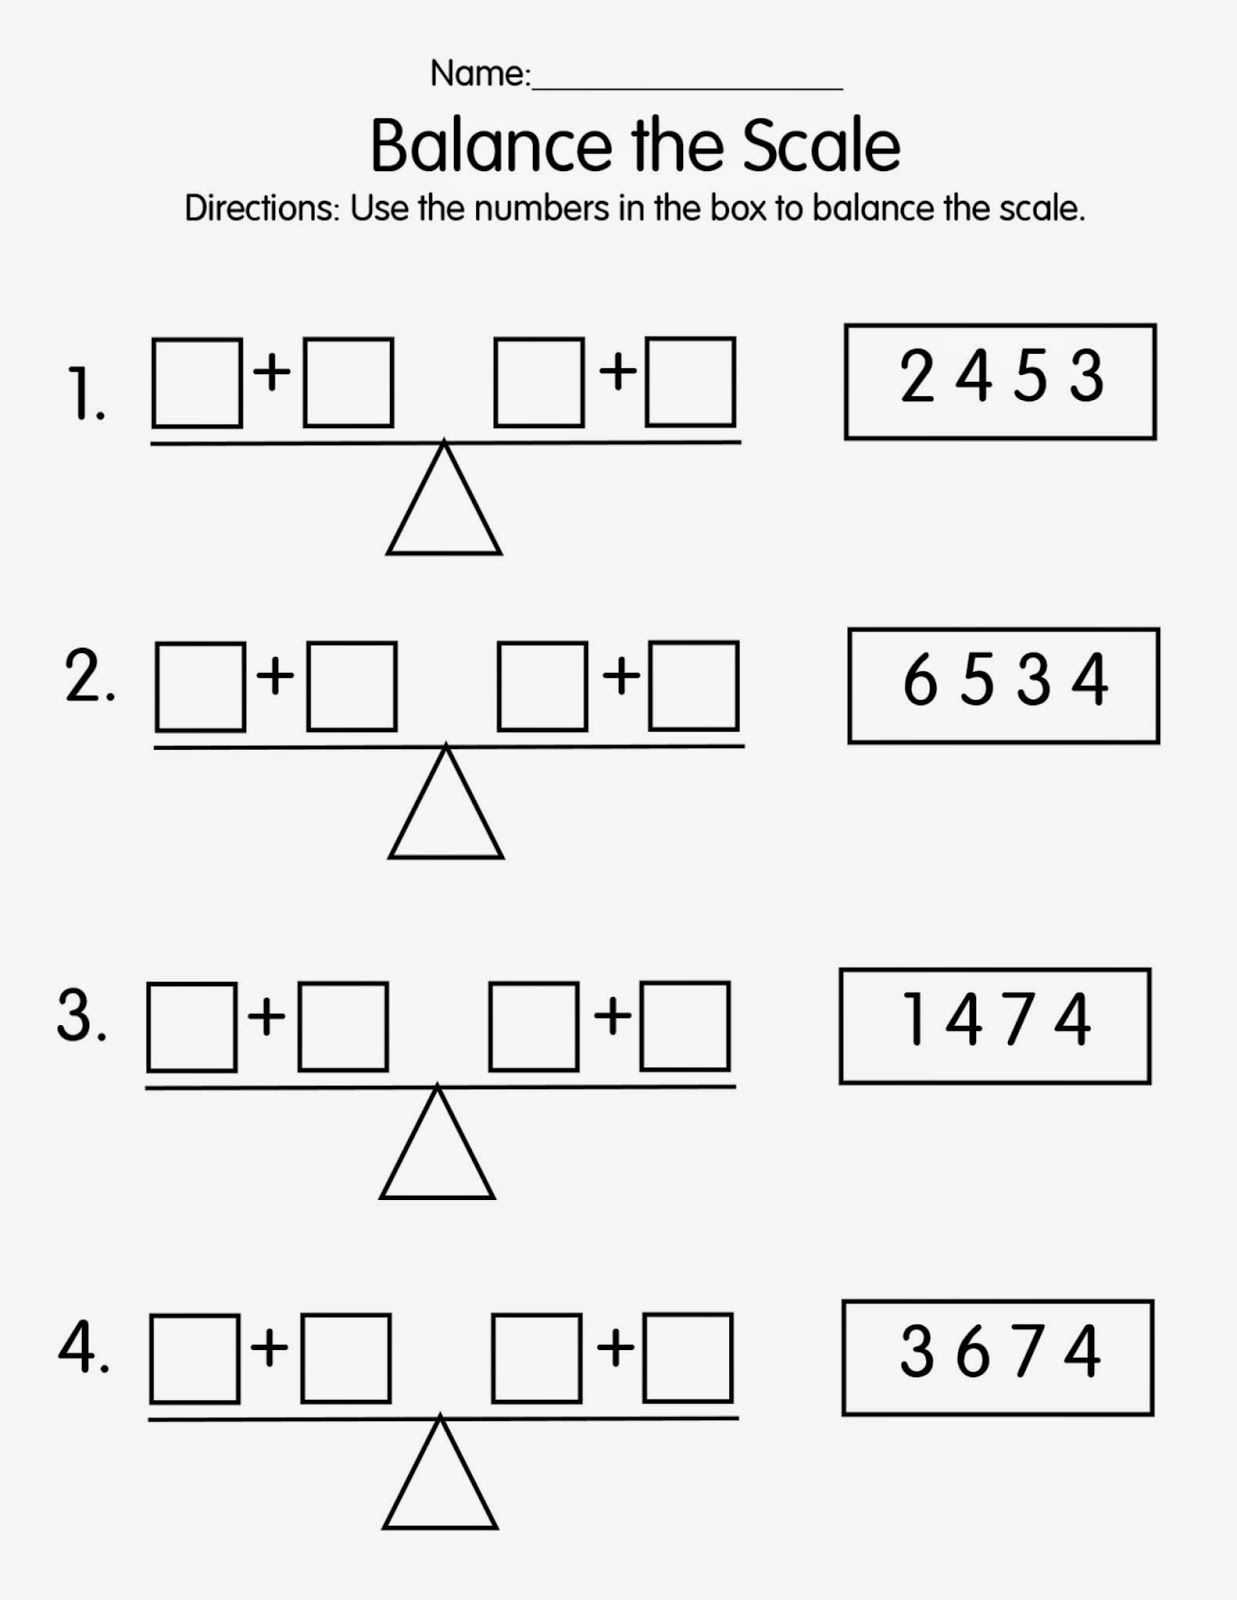 Use the numbers in the box to make both sides of the scale equal ...